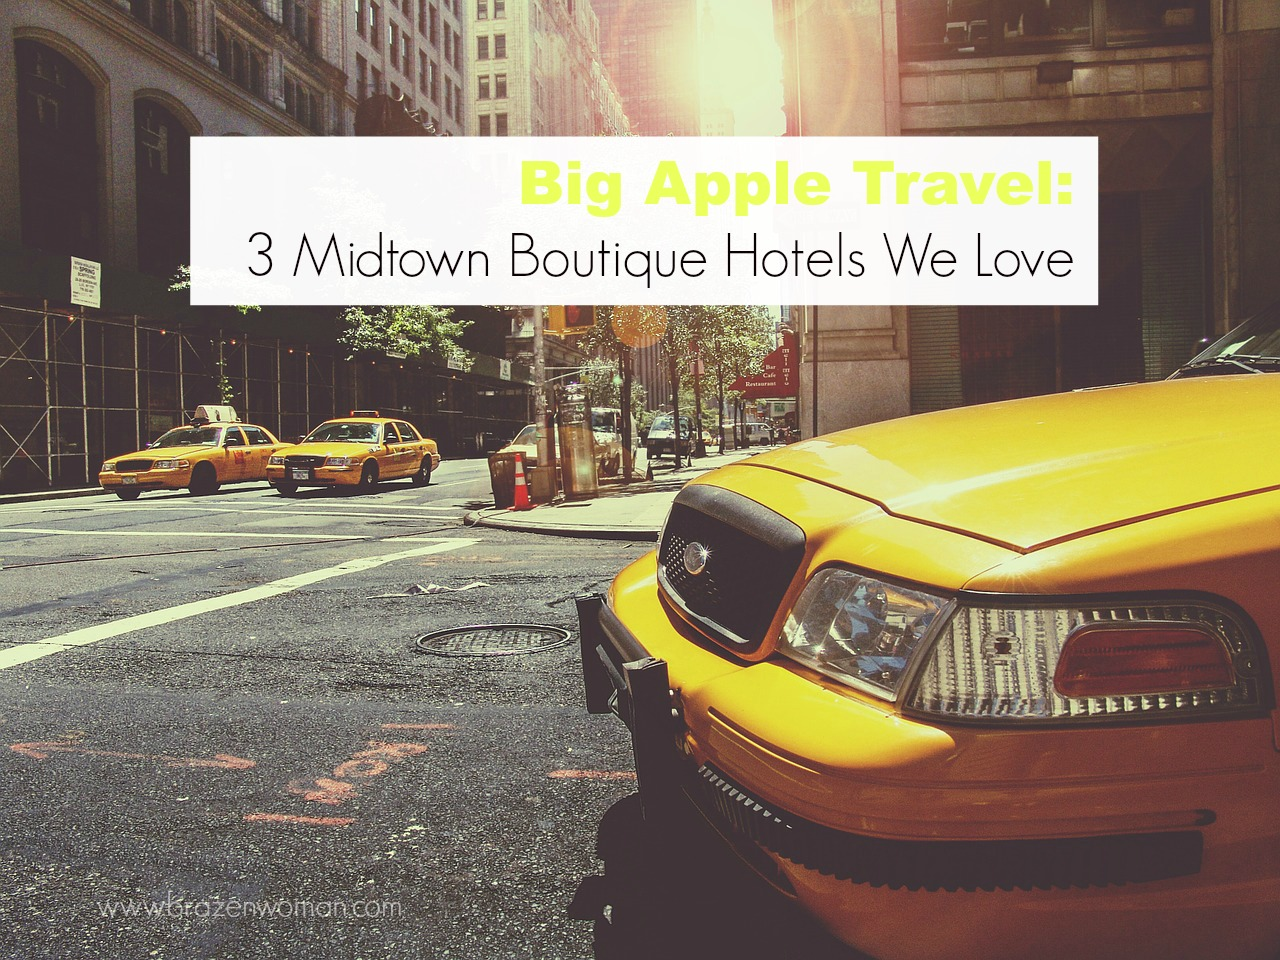 New york city 3 midtown boutique hotels we love brazenwoman for Top boutique hotels new york